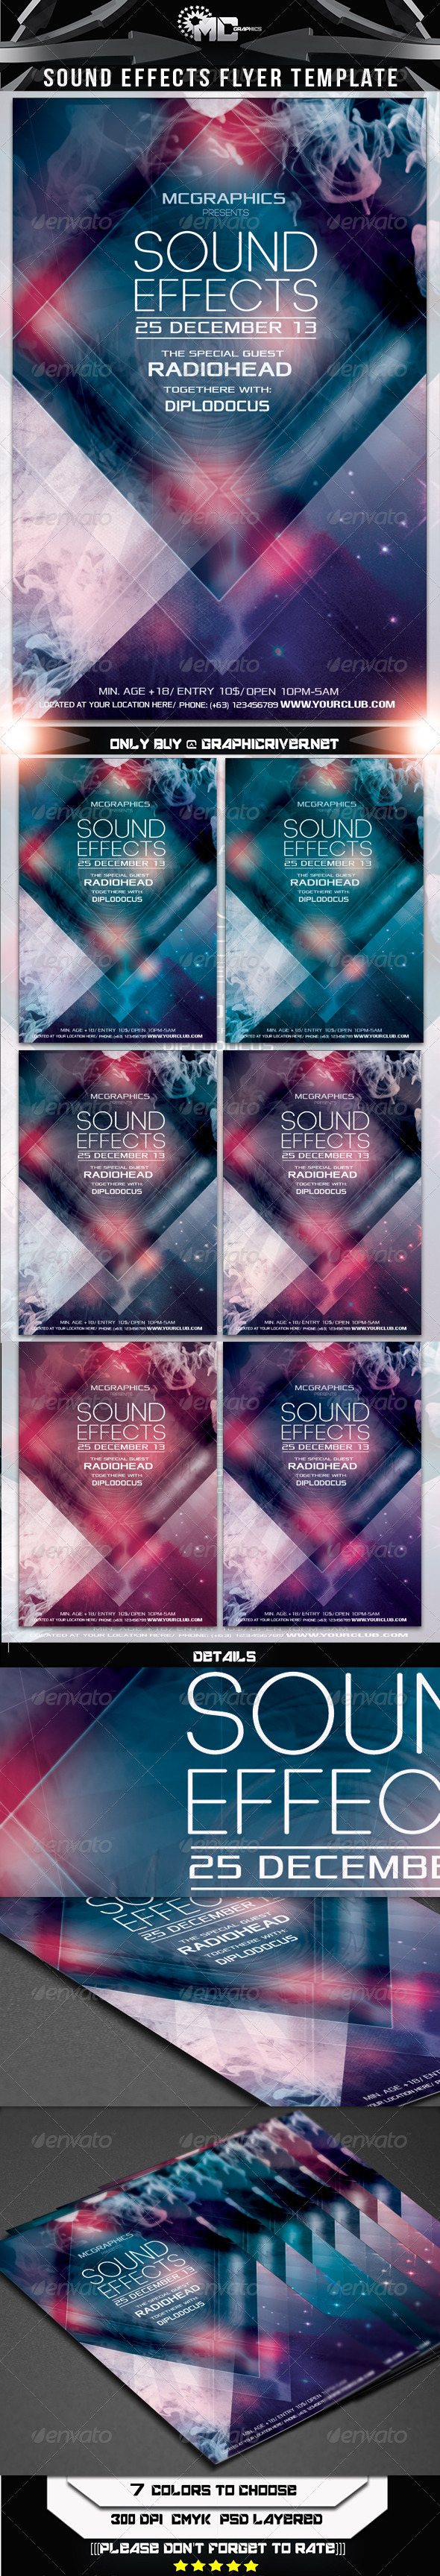 GraphicRiver Sound Effects Flyer Template 6098116